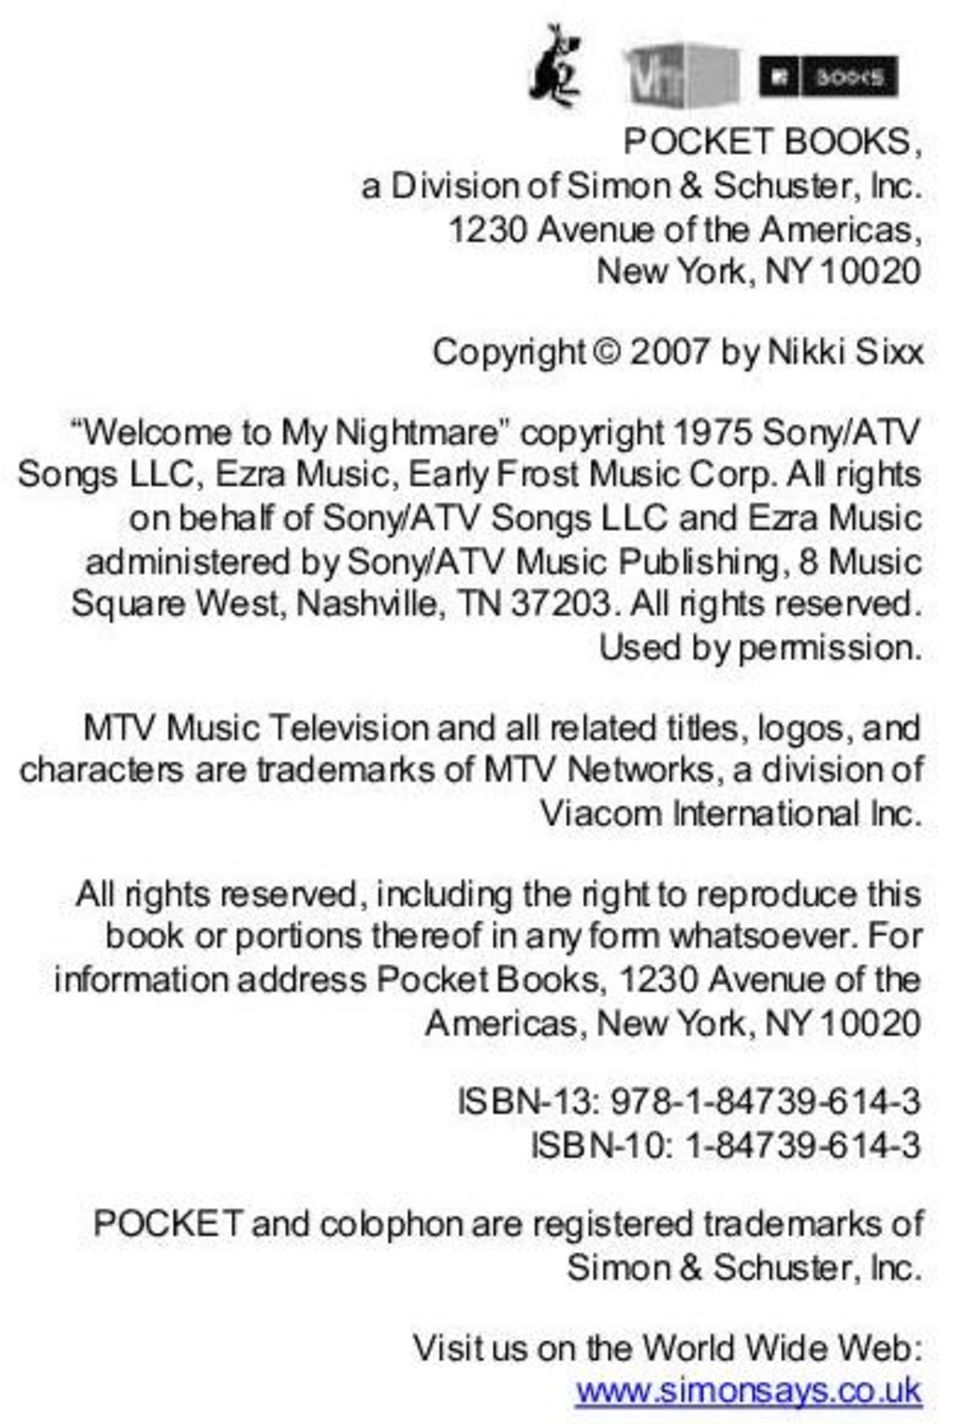 All rights on behalf of Sony/ATV Songs LLC and Ezra Music administered by Sony/ATV Music Publishing, 8 Music Square West, Nashville, TN 37203. All rights reserved. Used by permission.